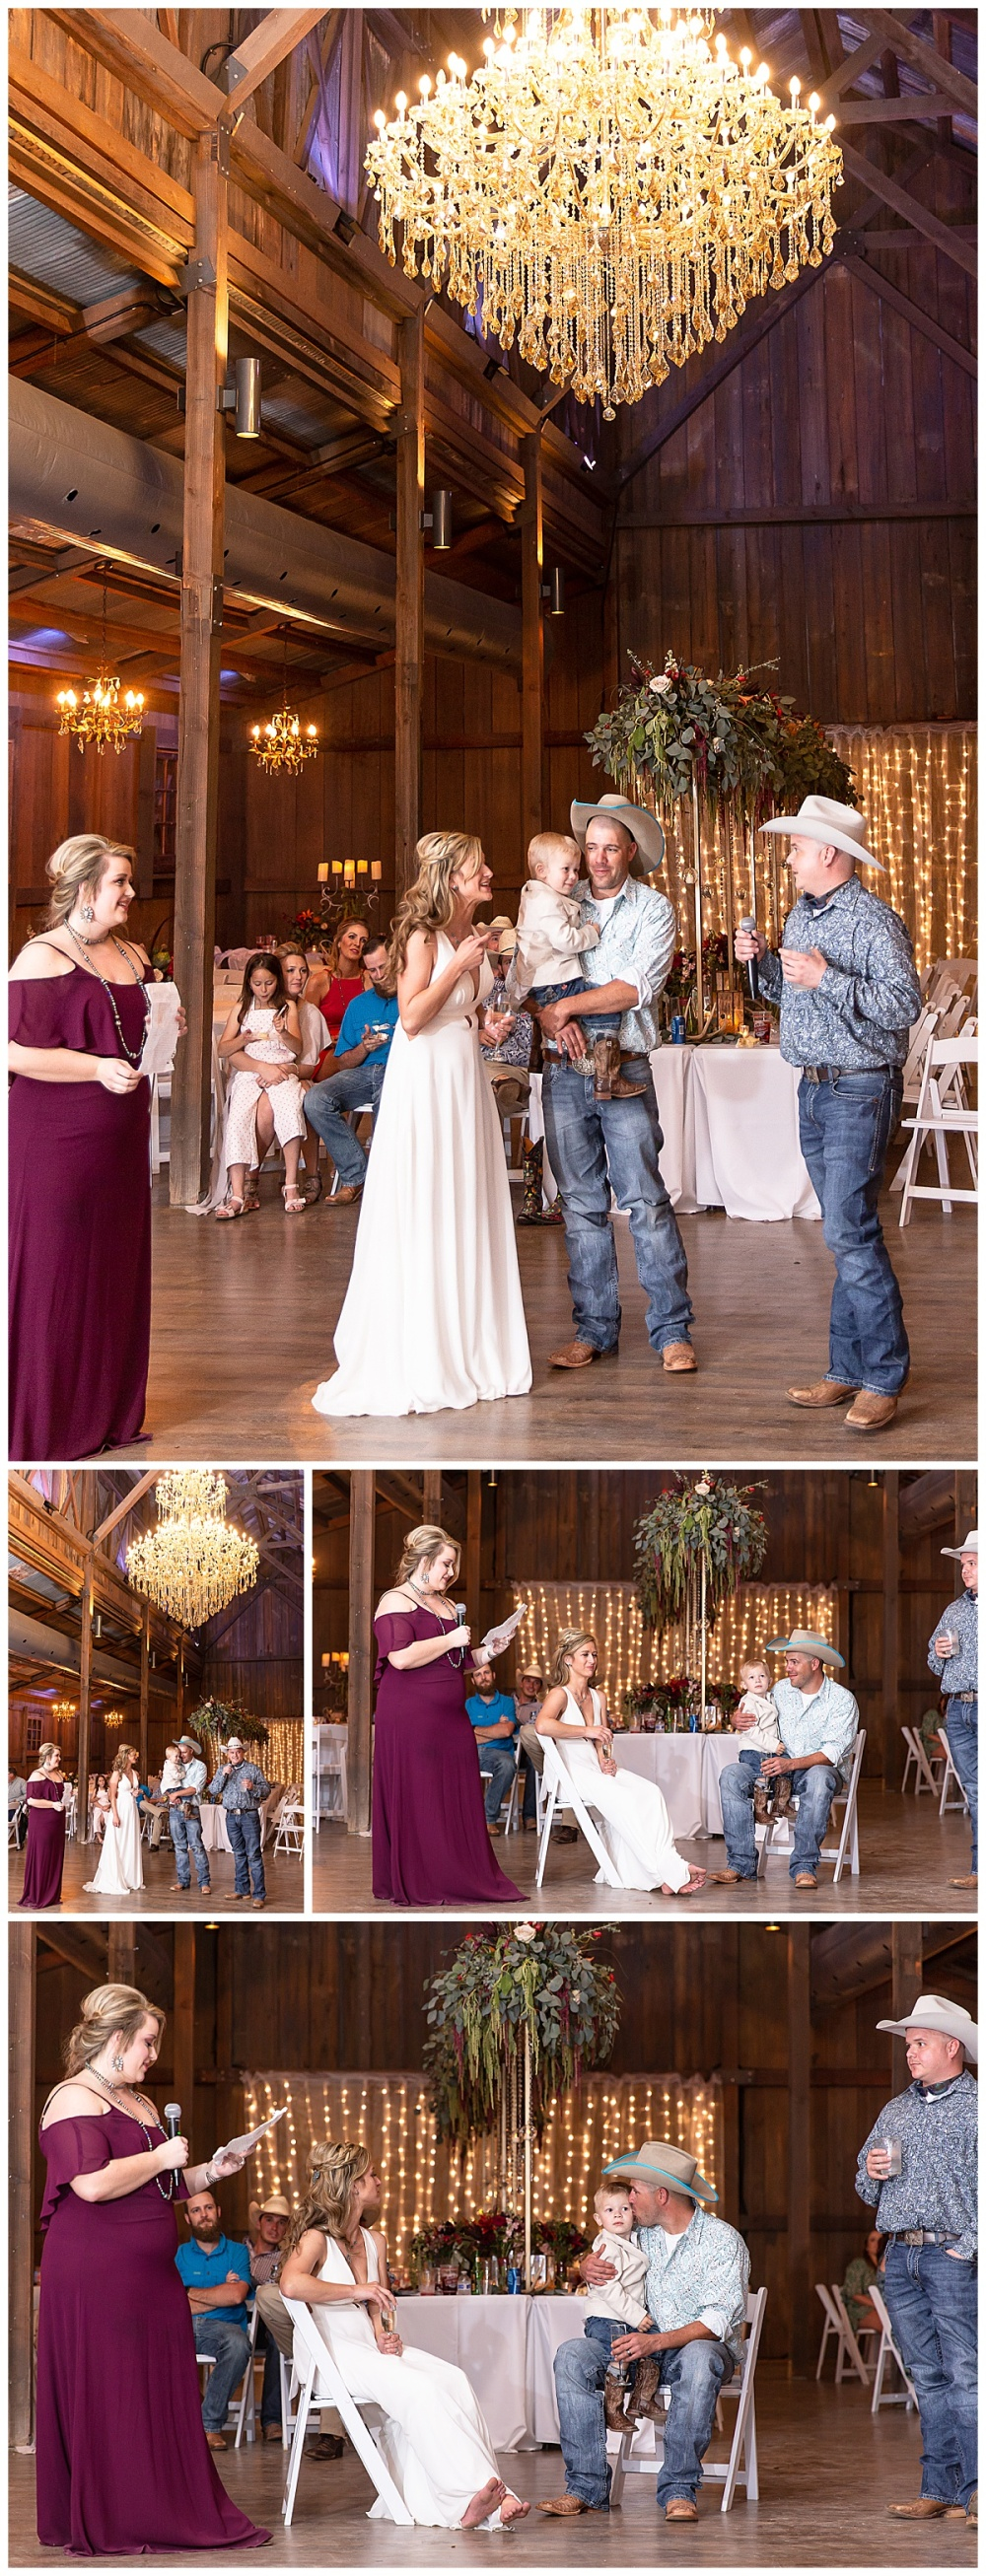 Eagle-Dancer-Ranch-Boerne-Texas-Wedding-Party-Barn-Carly-Barton-Photography_0063.jpg